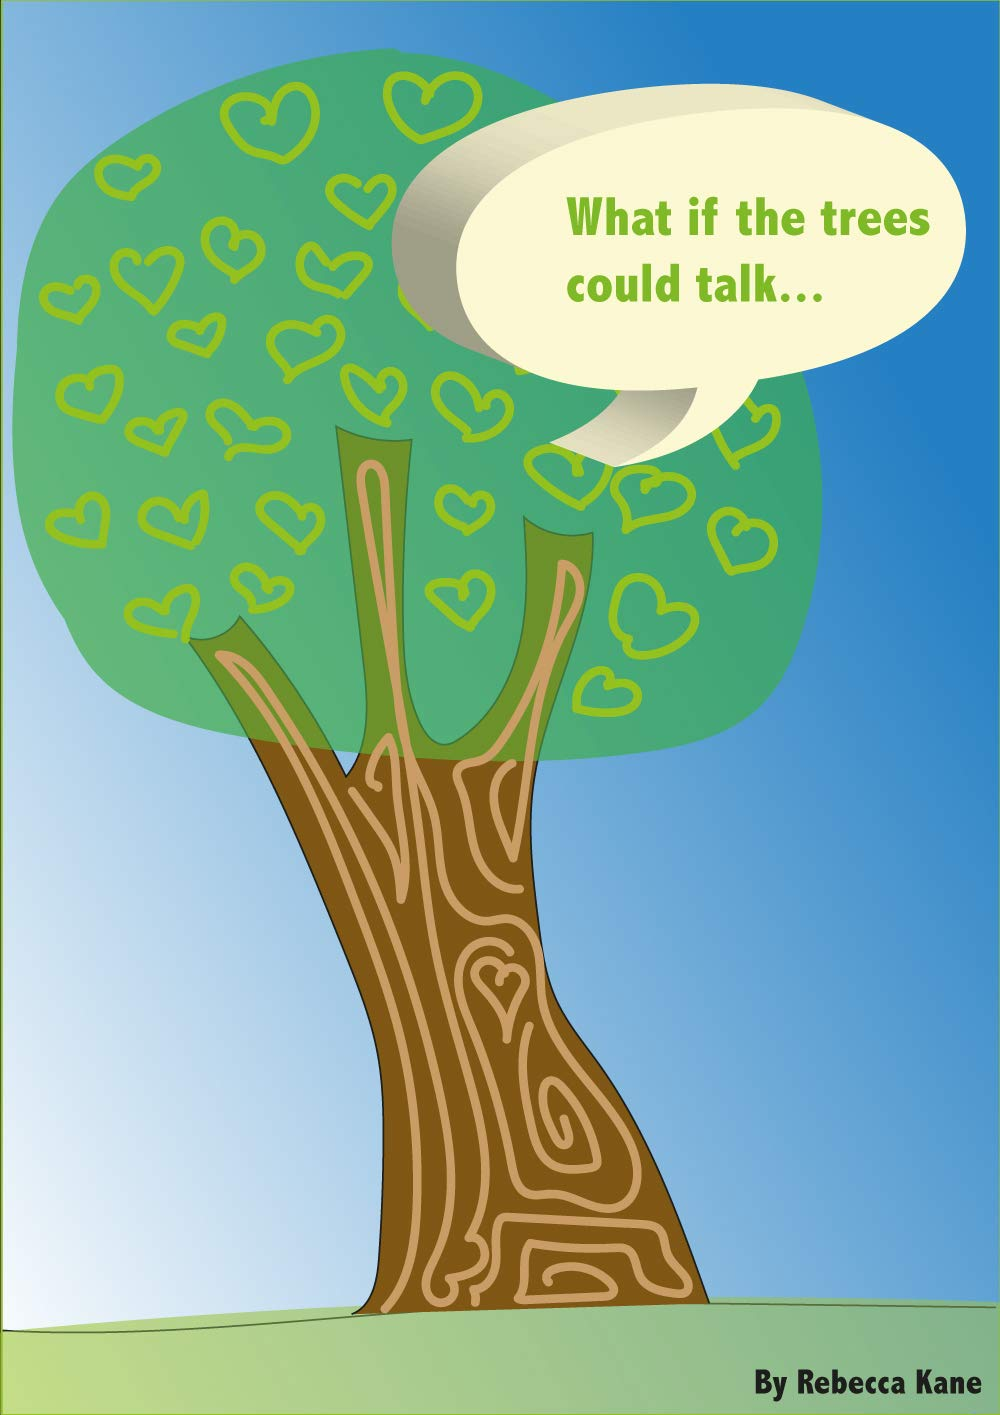 What if the trees could talk...